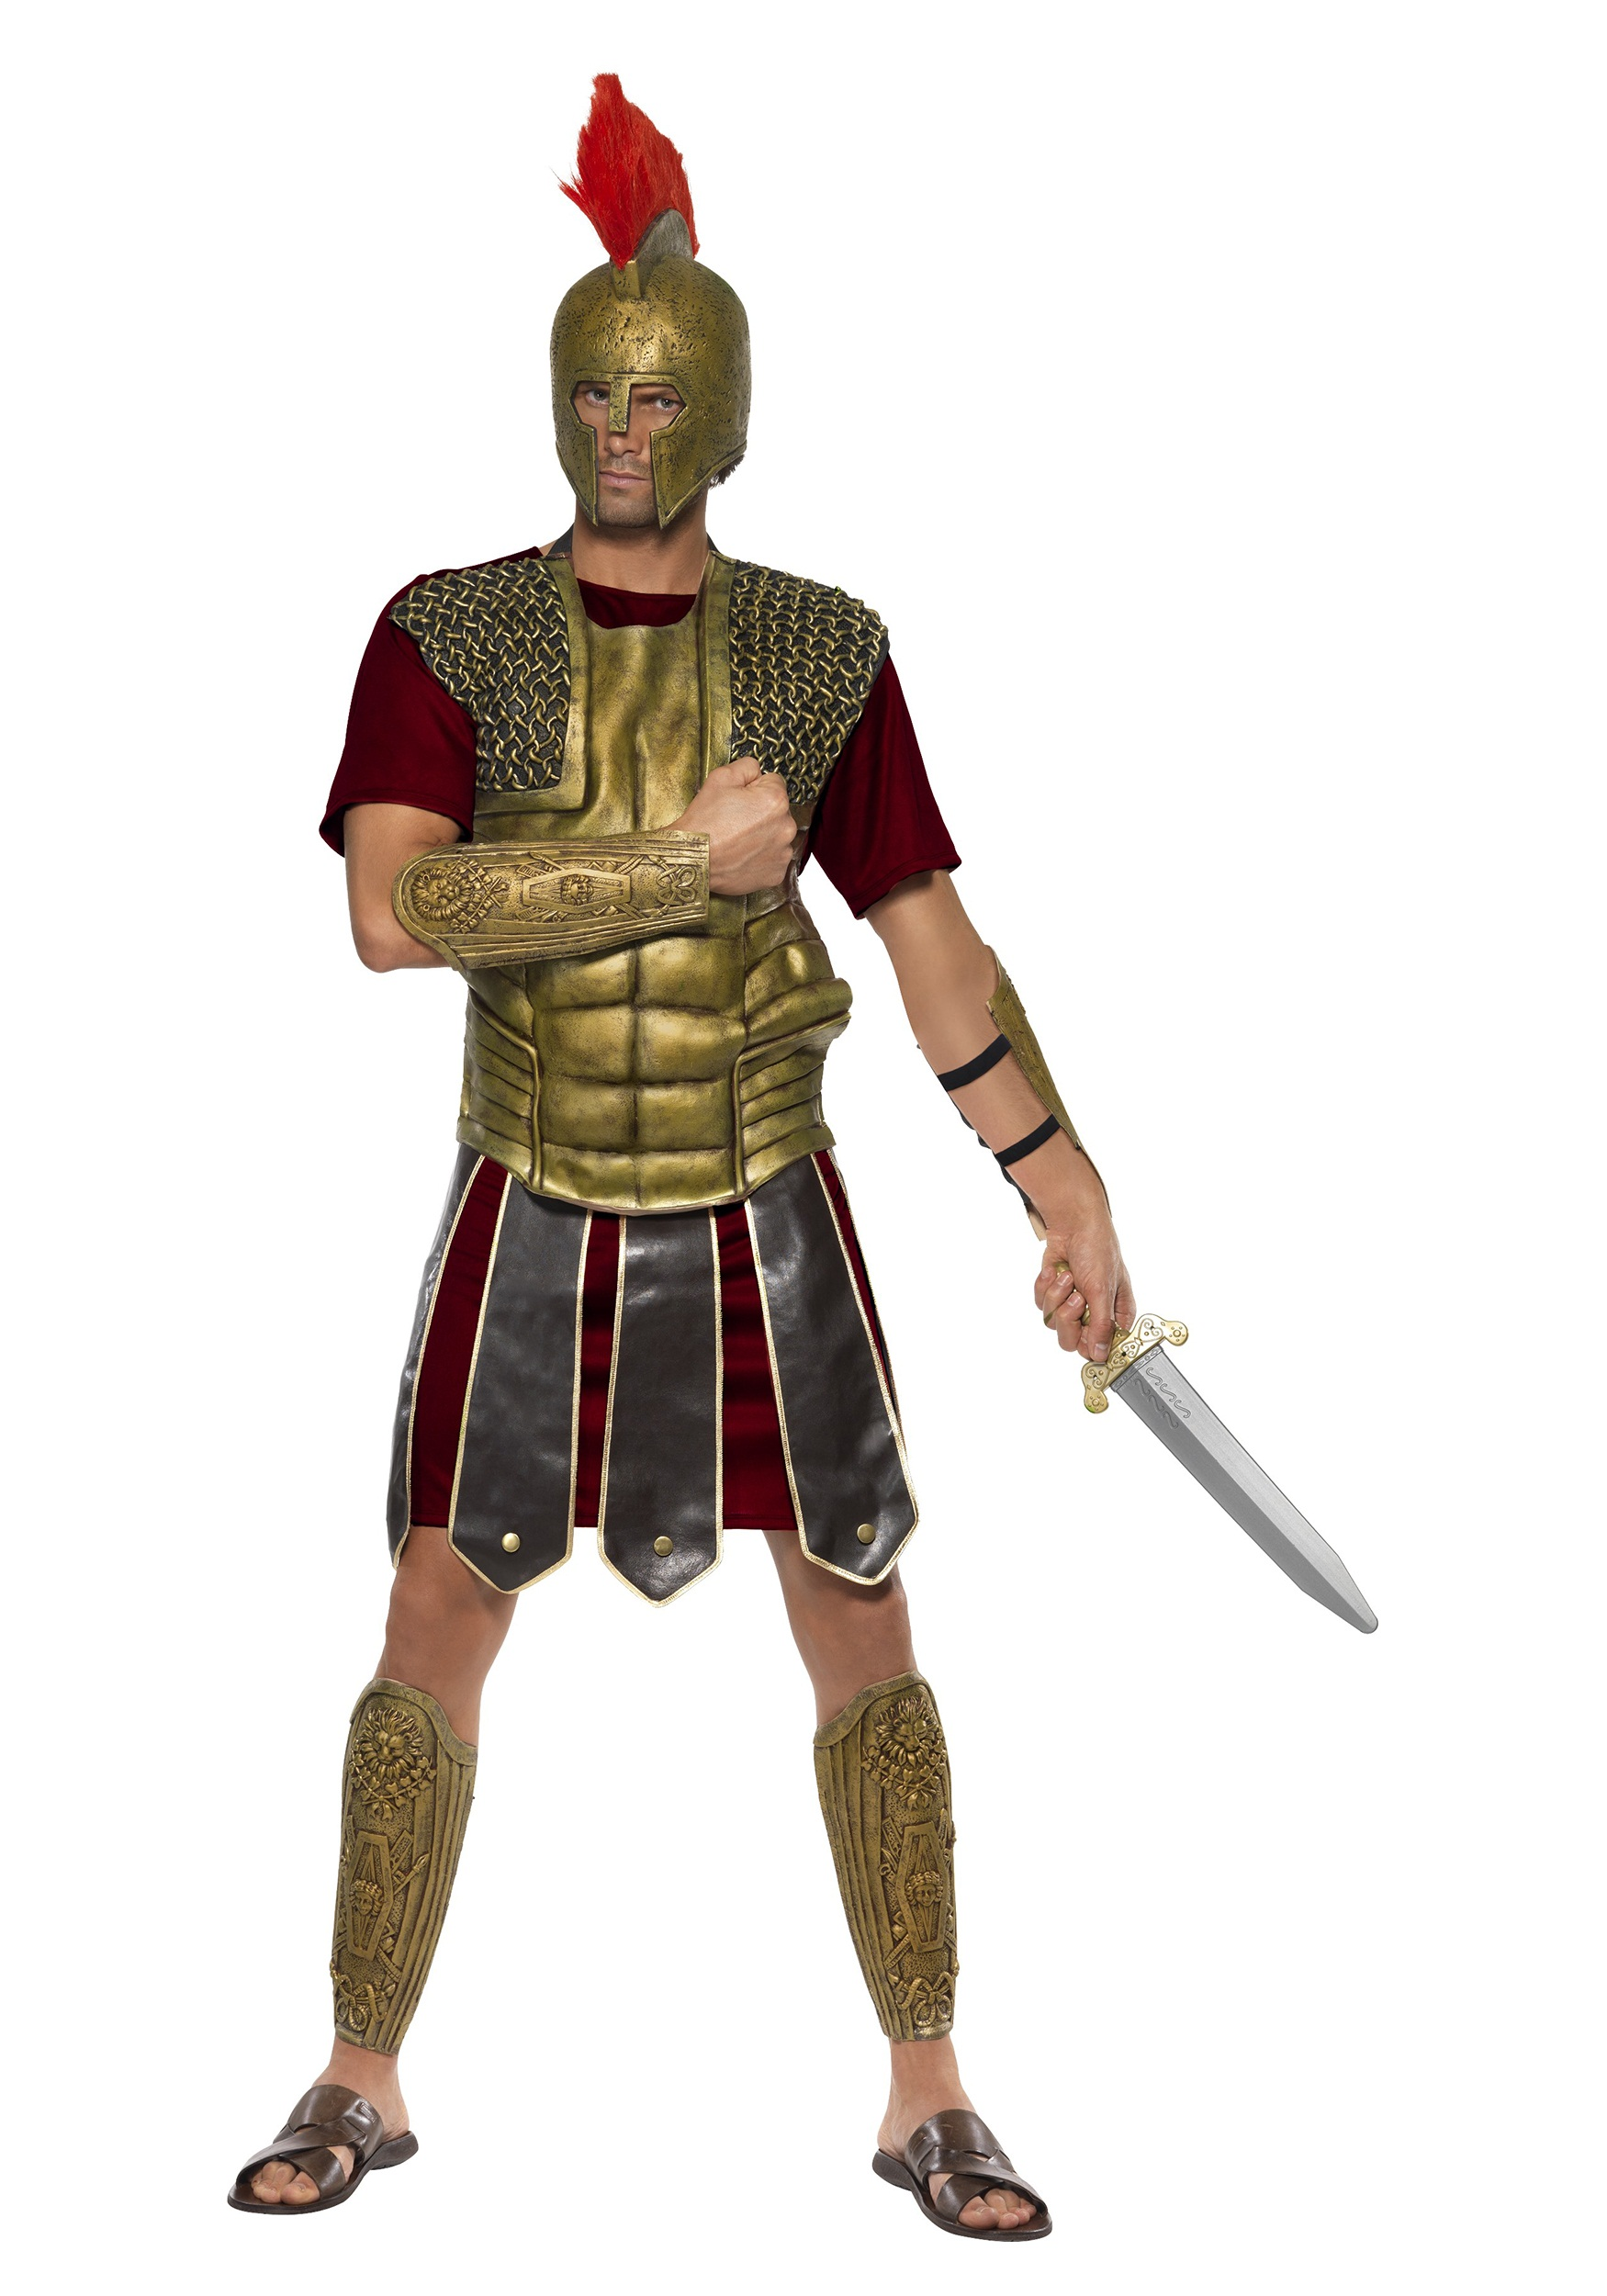 sc 1 st  Halloween Costumes : mens spartan costume  - Germanpascual.Com